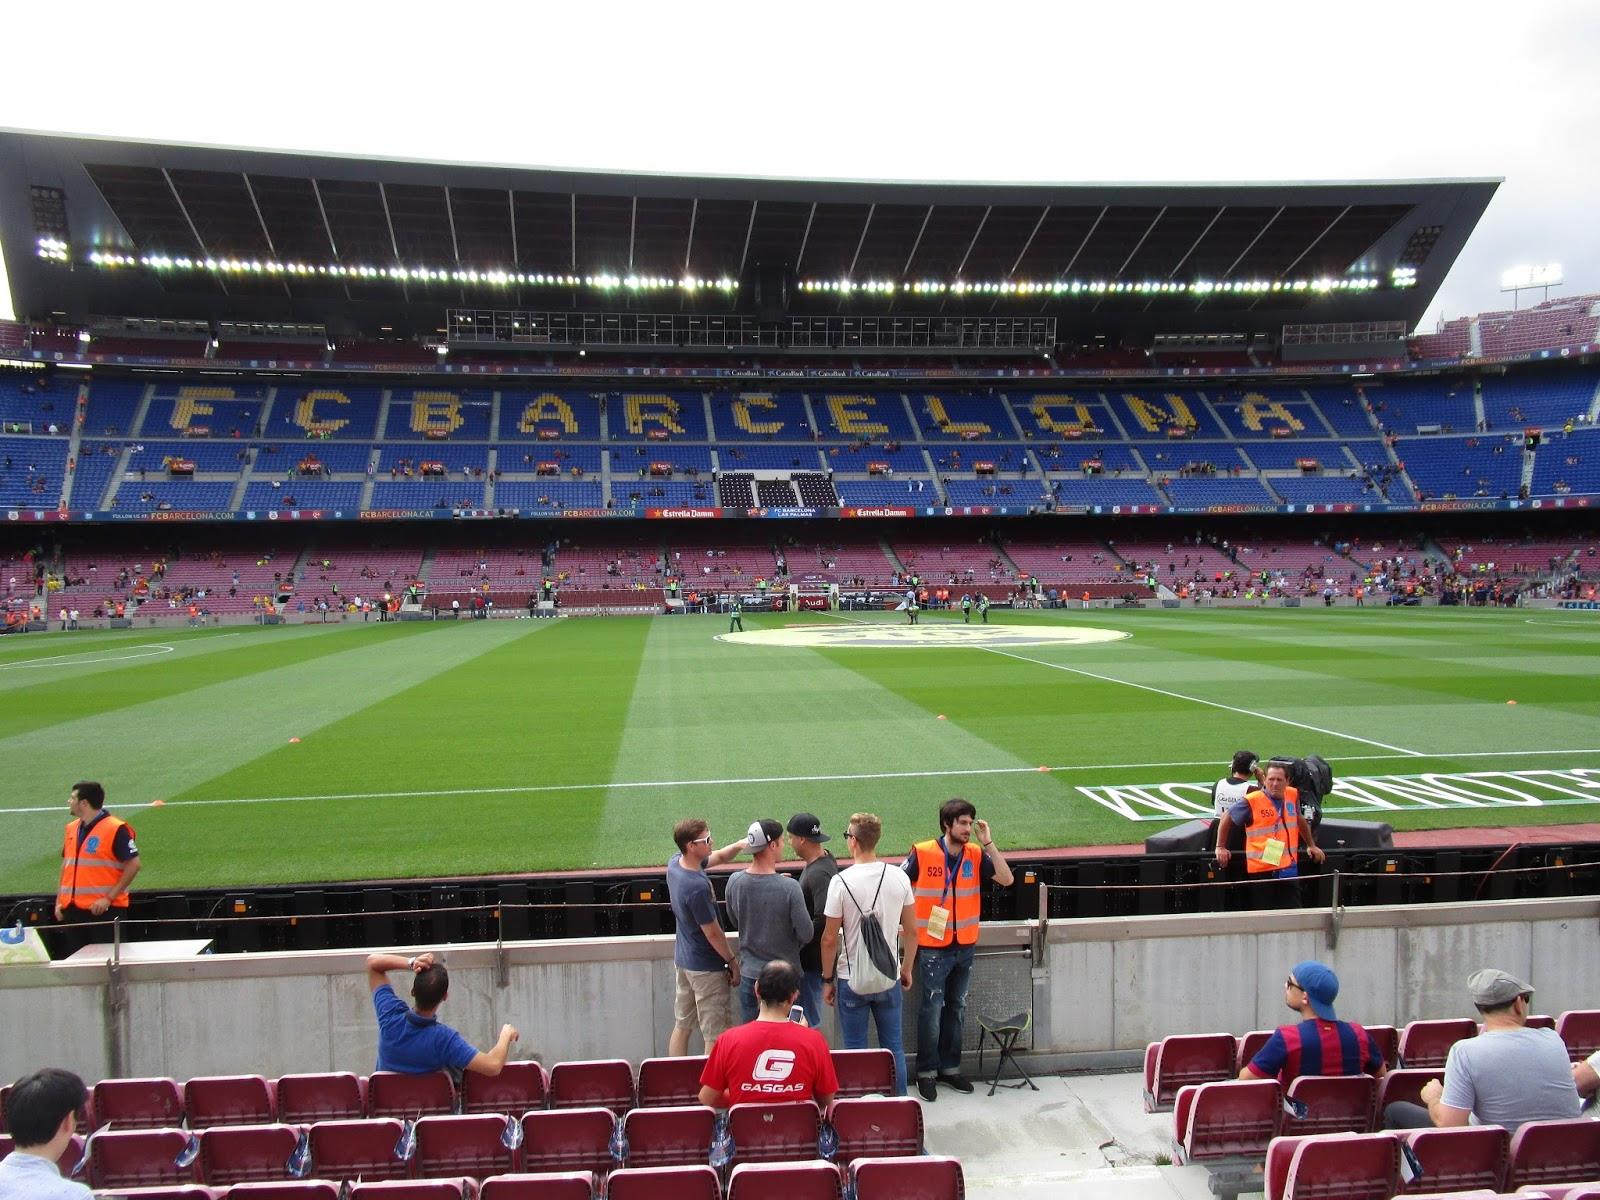 FC Barcelona spelled out in the seats at Camp Nou